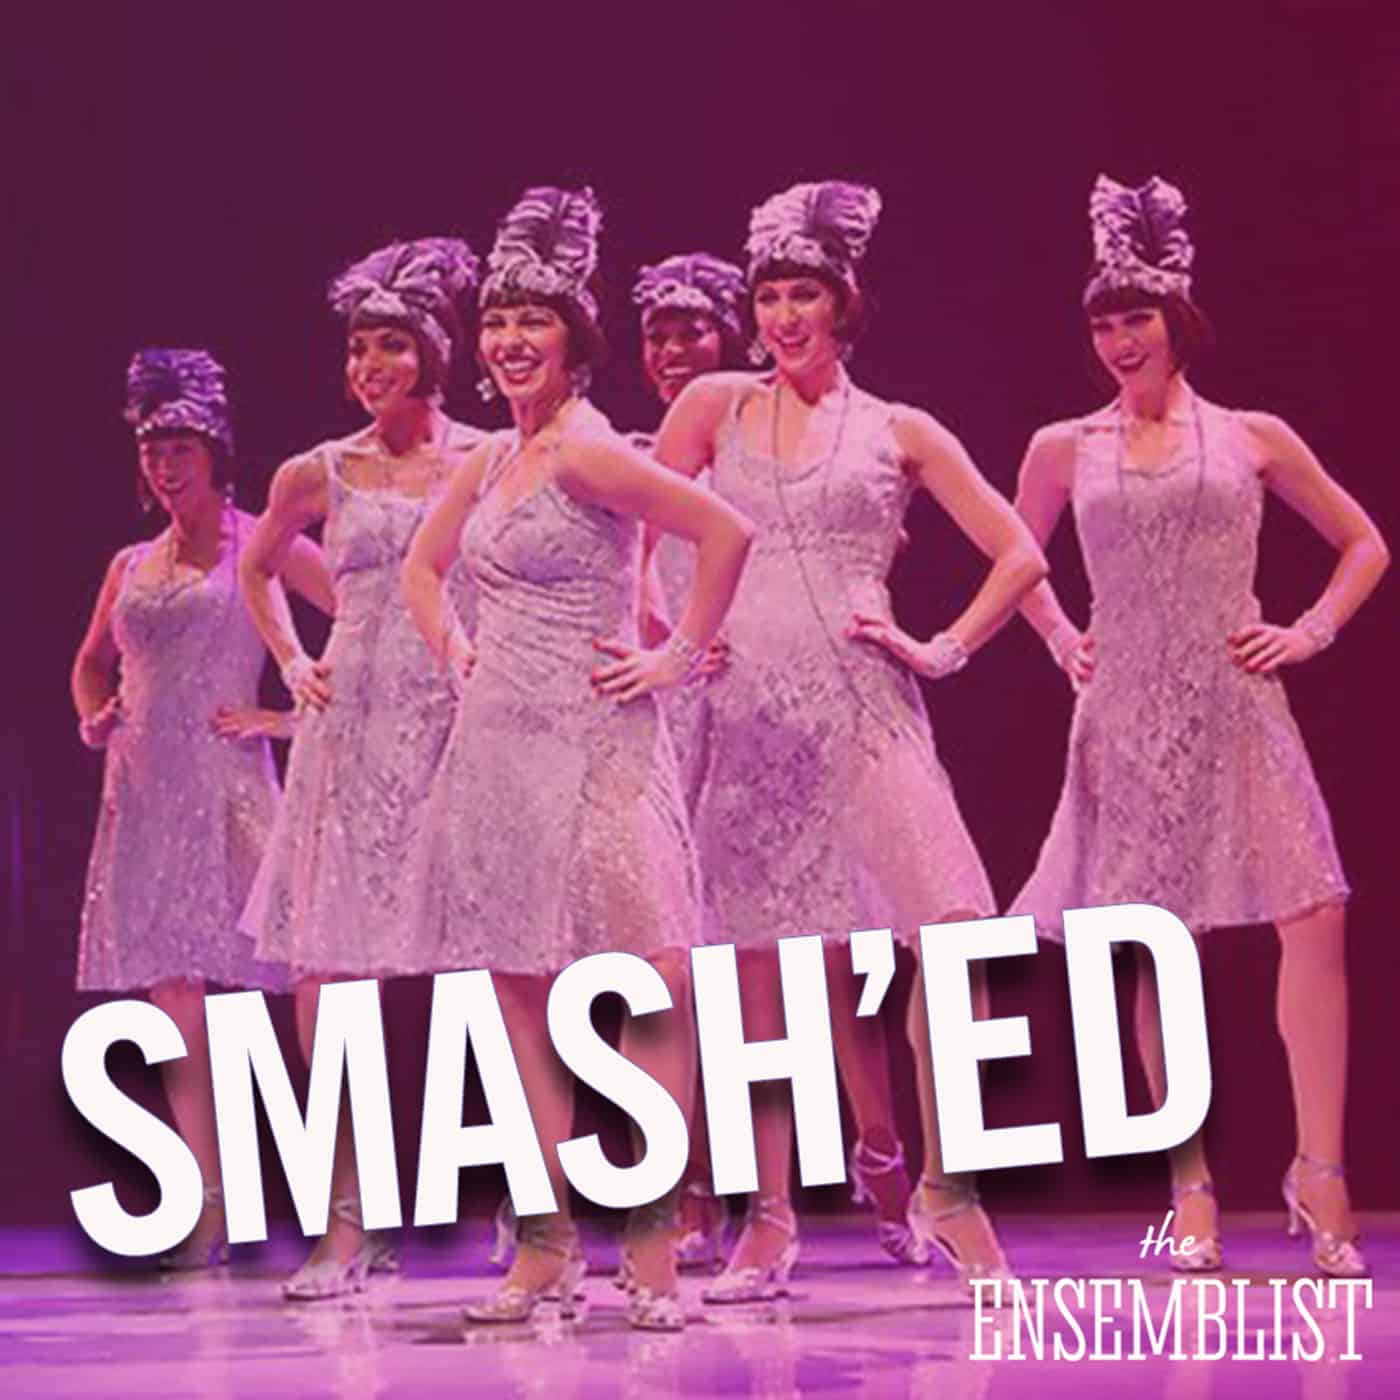 The Ensemblist hosted by Mo Brady Episode 208 SMASH'ED